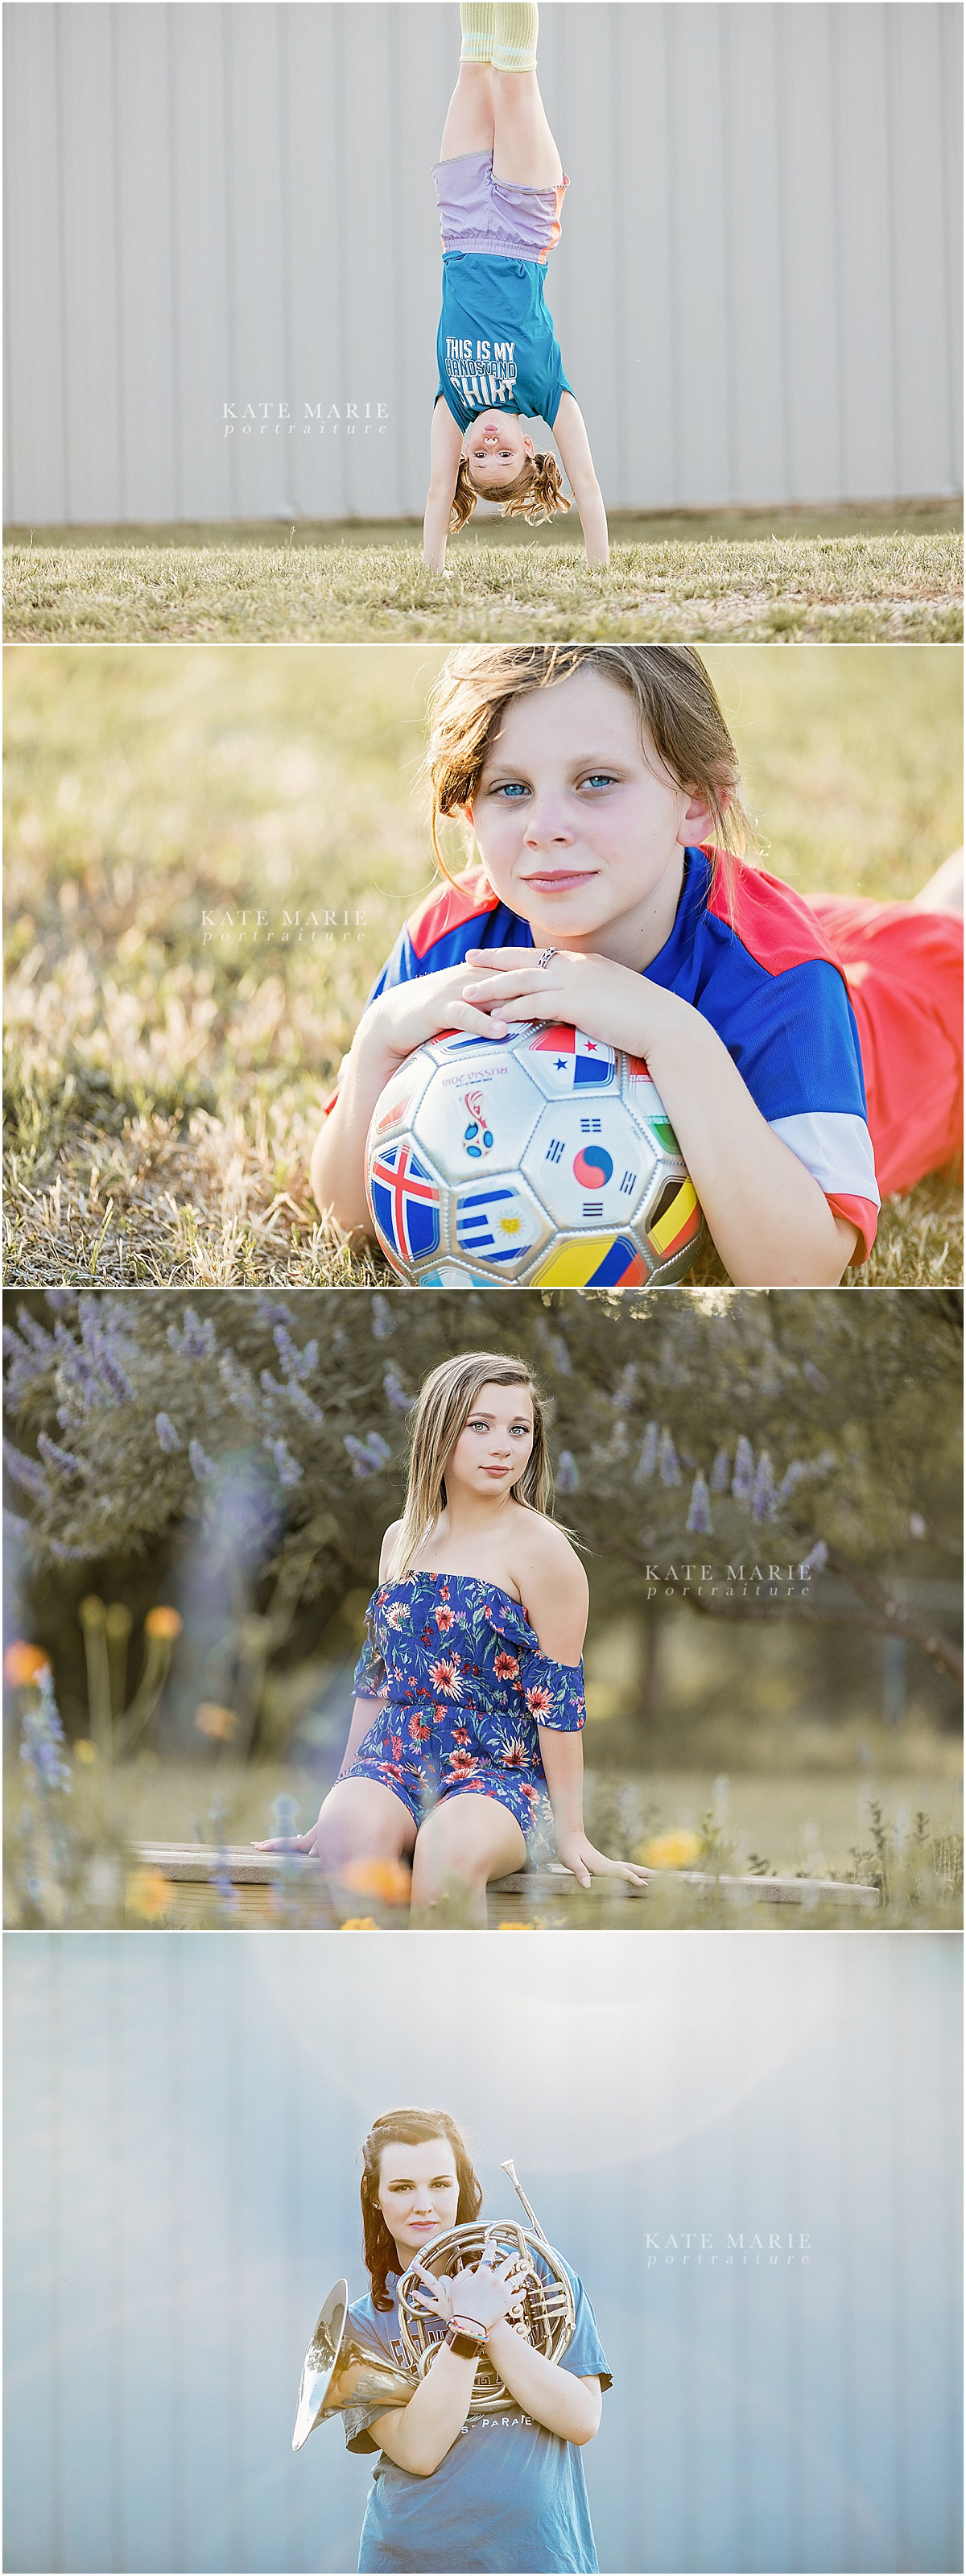 Flower-Mound-Family-Photographer-Anderson-katemarieportraiture-5.jpg